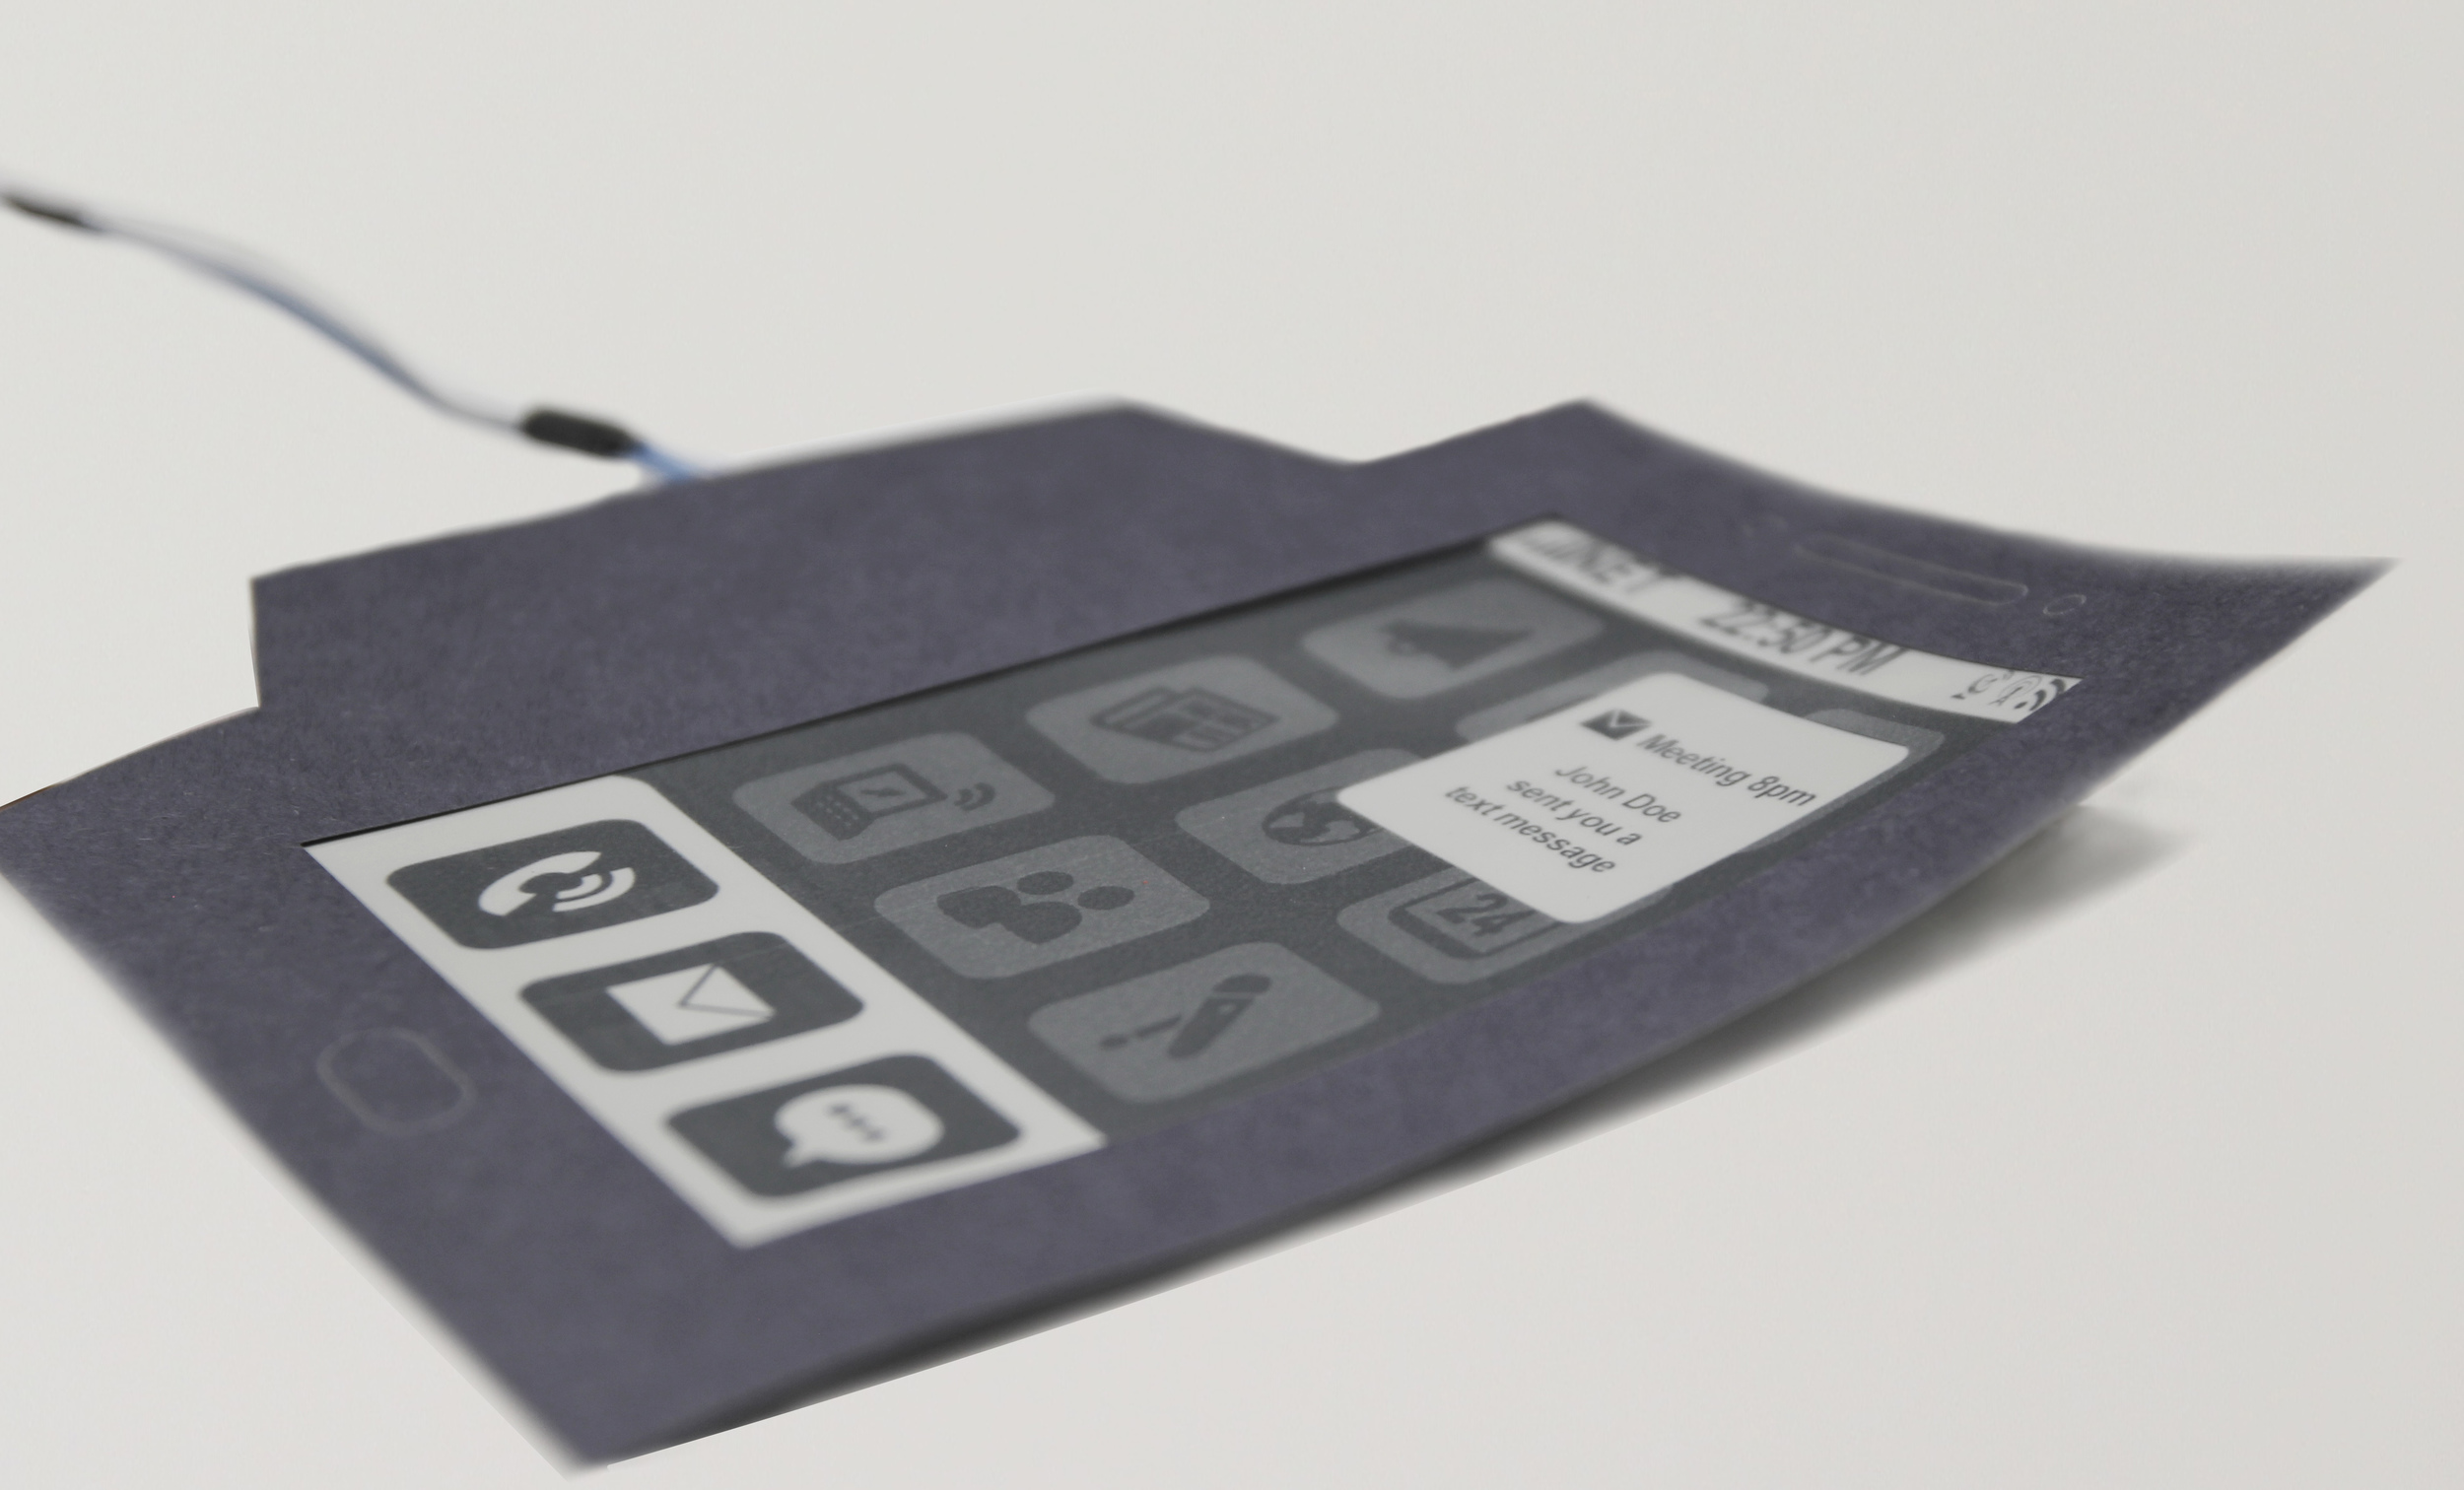 morephone (2013): message notification (side view)